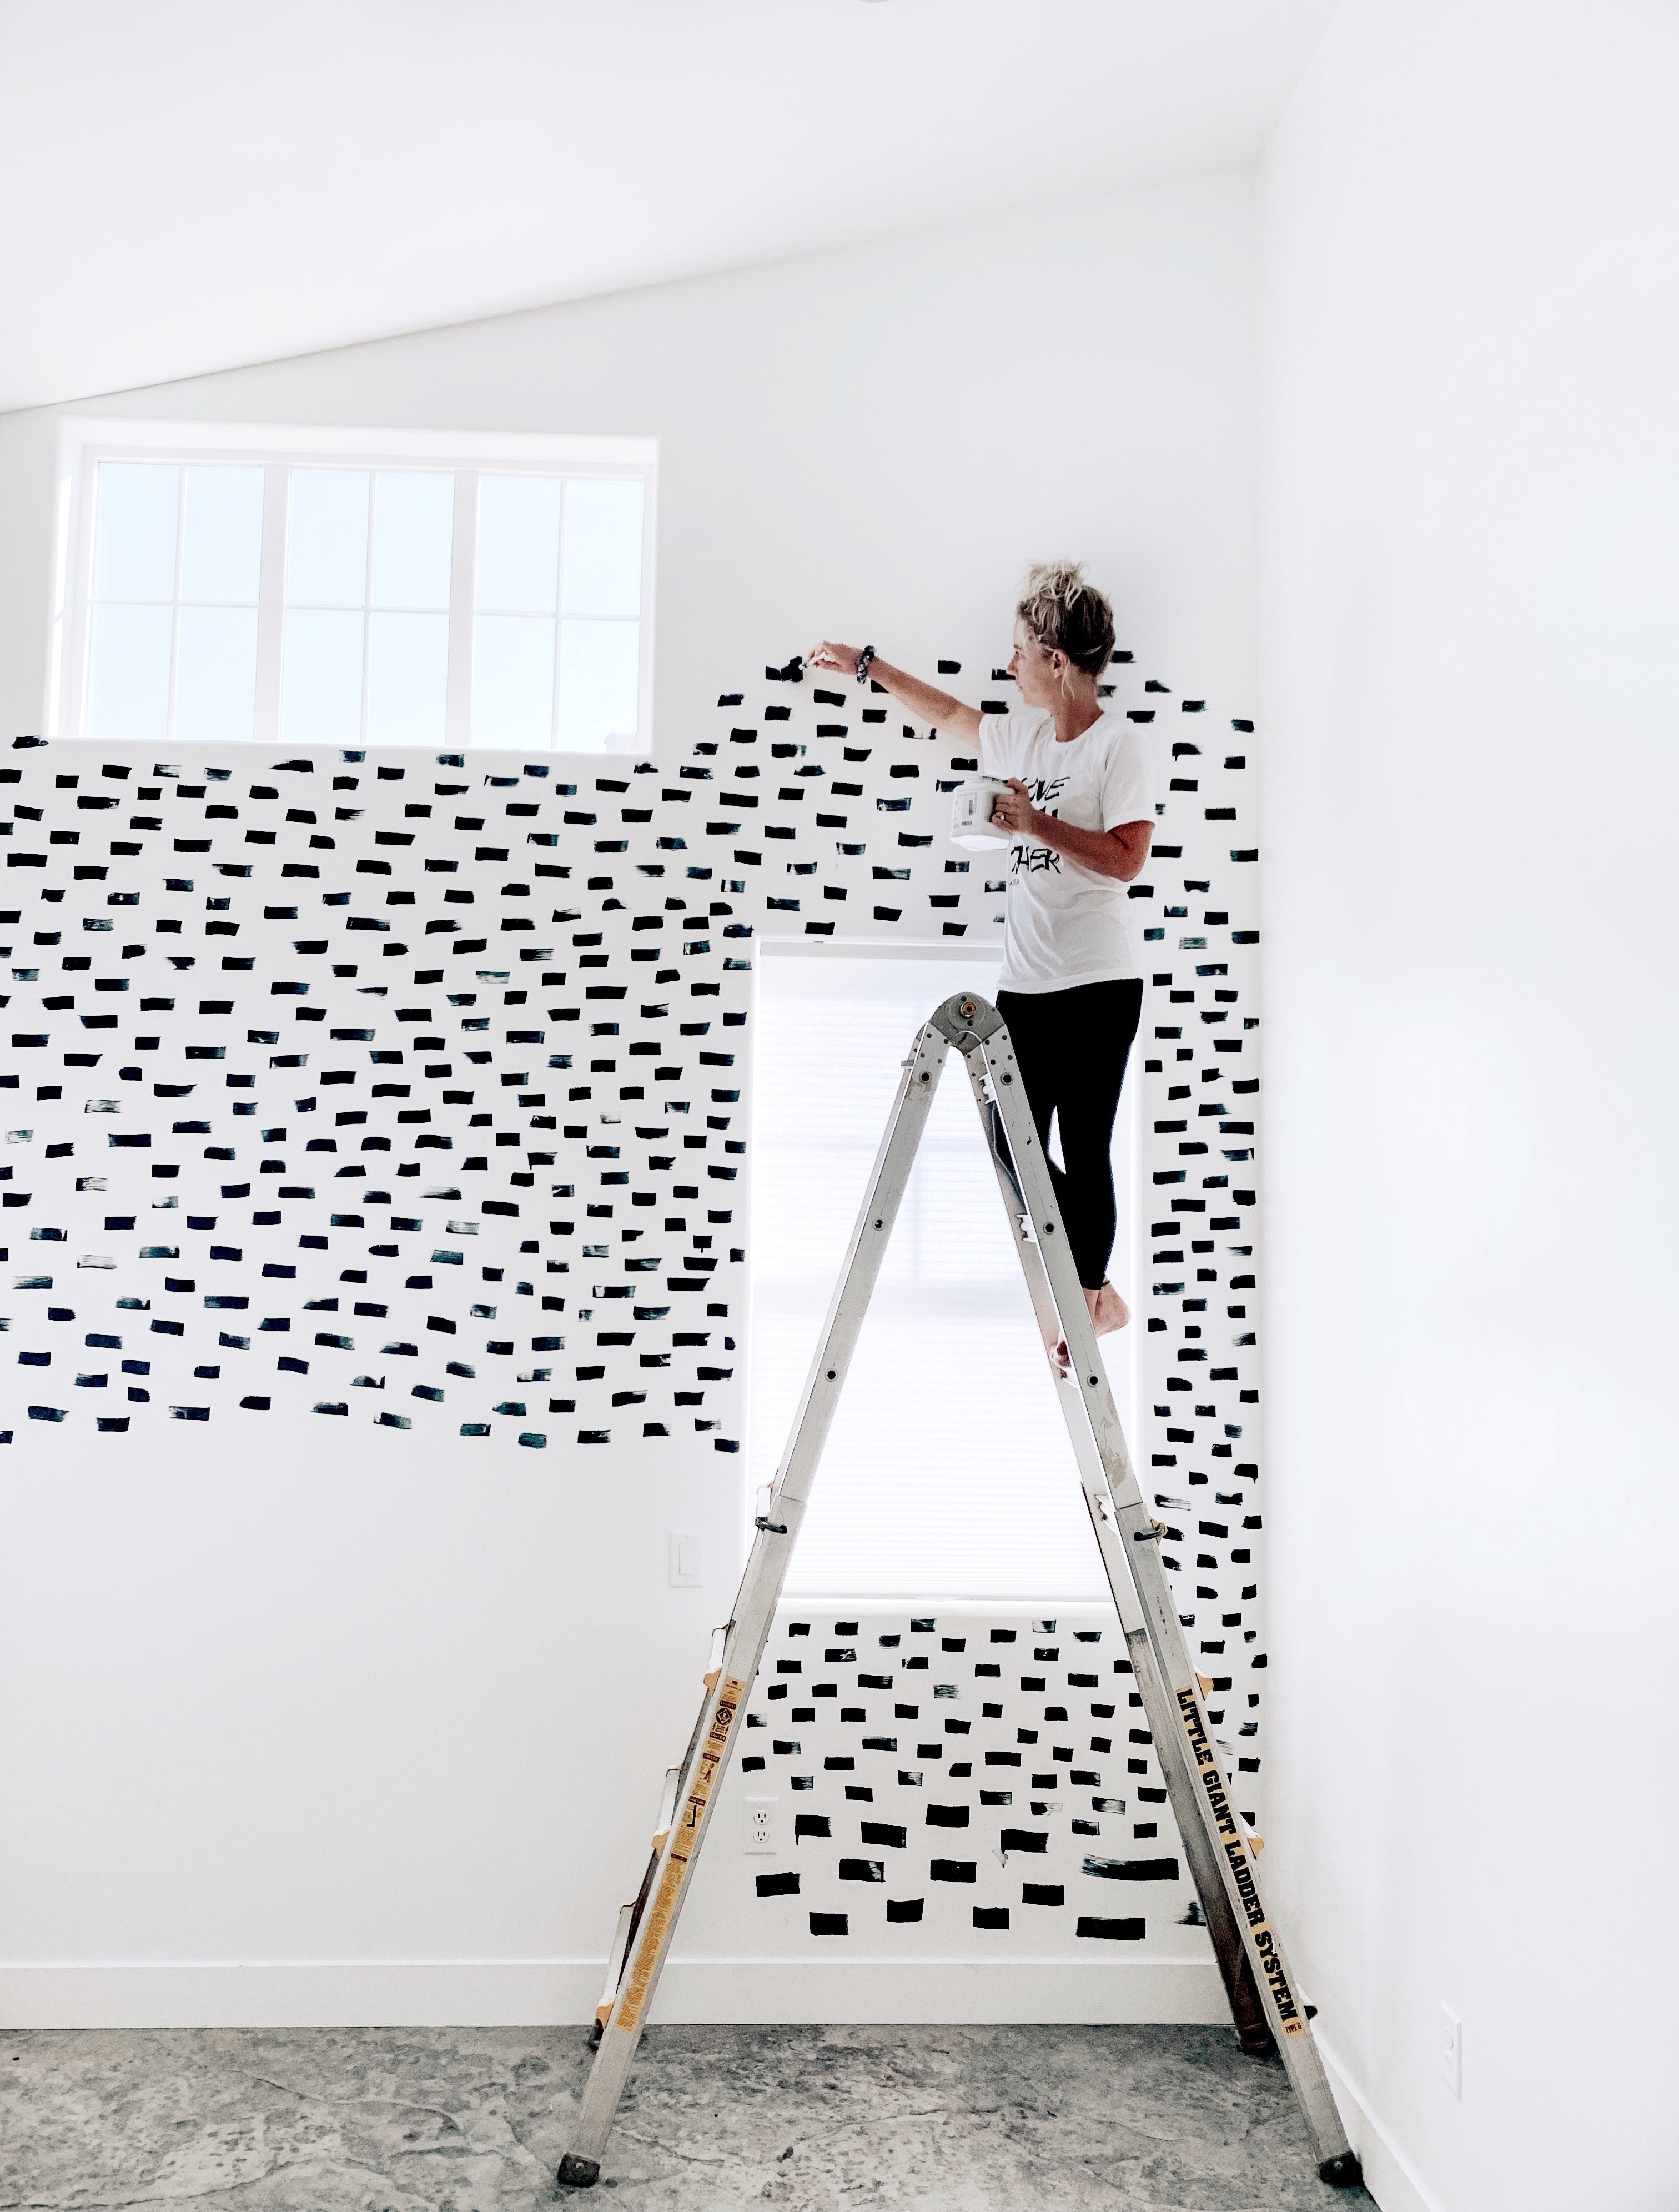 woman on a ladder painting black strokes across the wall